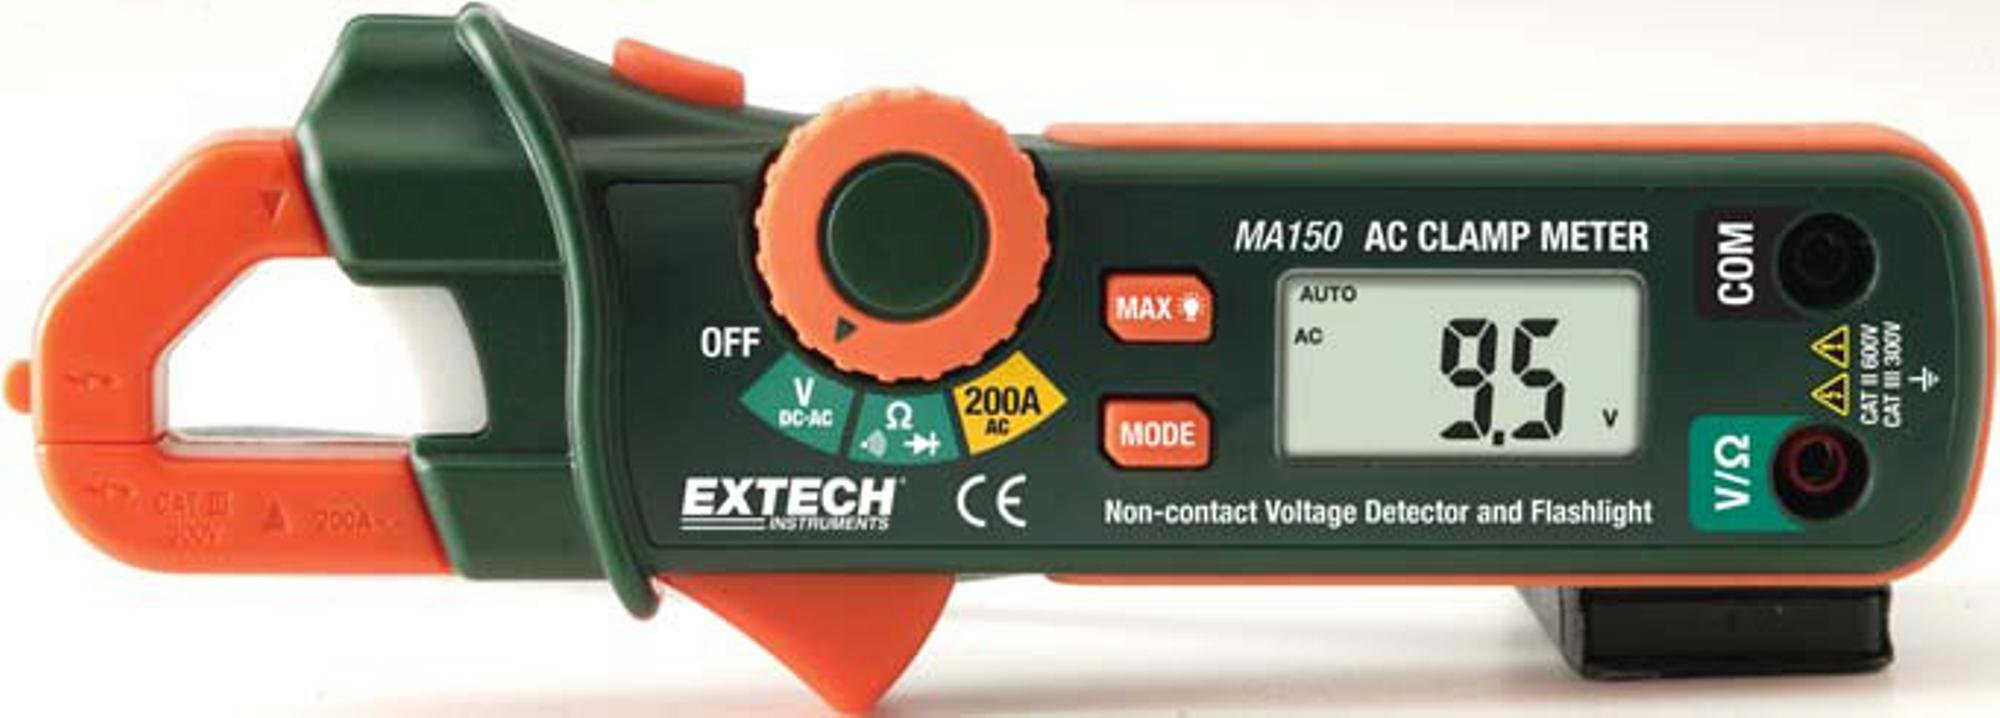 Extech MA150 Clamp Meter With Built-In Non-Contact Voltage